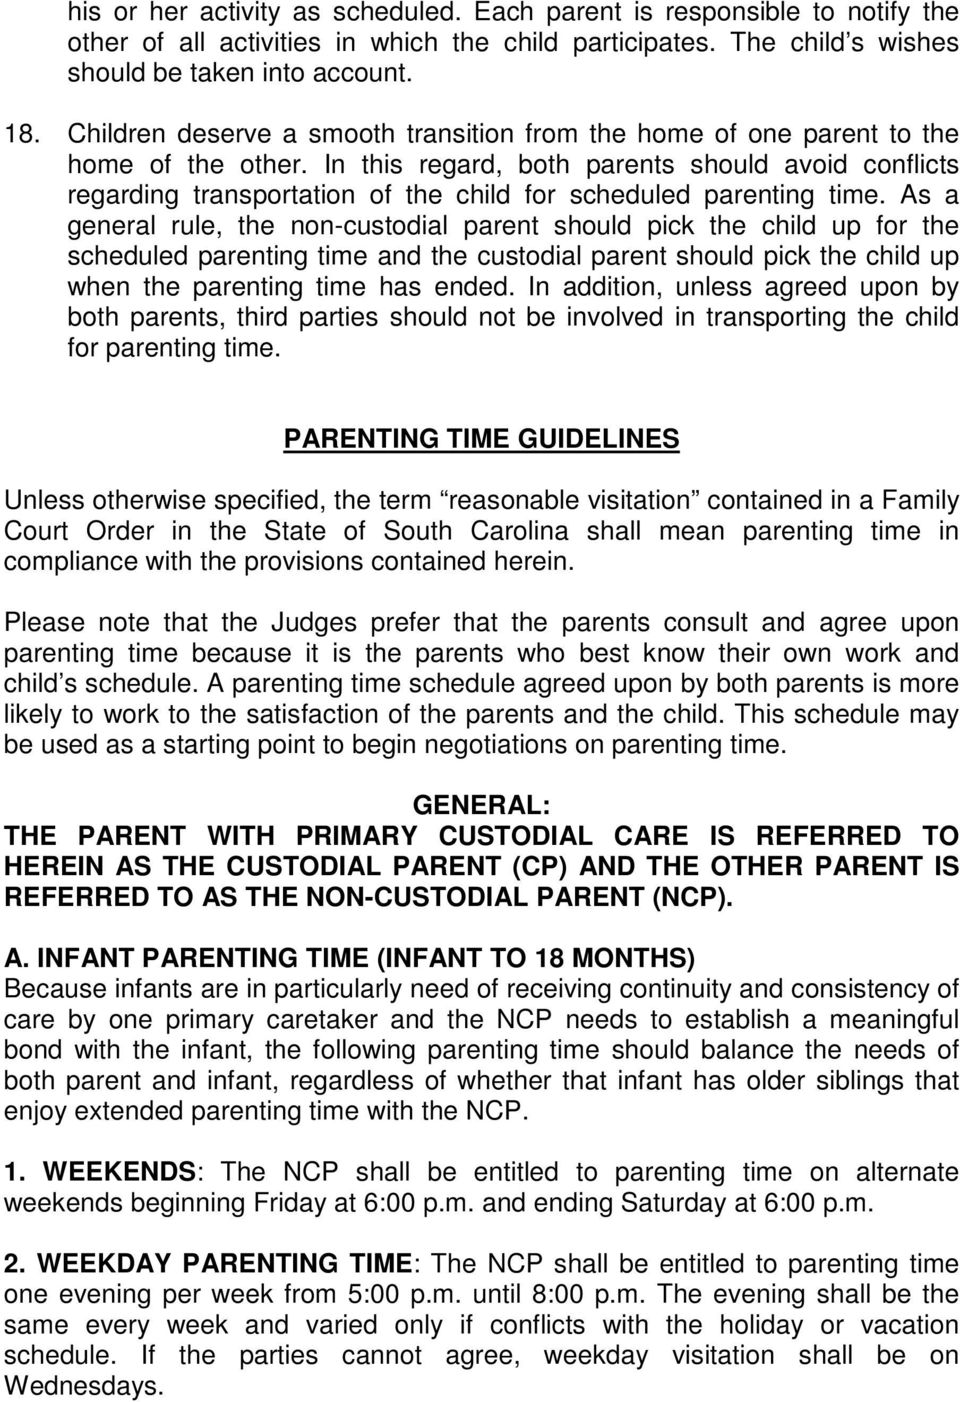 In this regard, both parents should avoid conflicts regarding transportation of the child for scheduled parenting time.